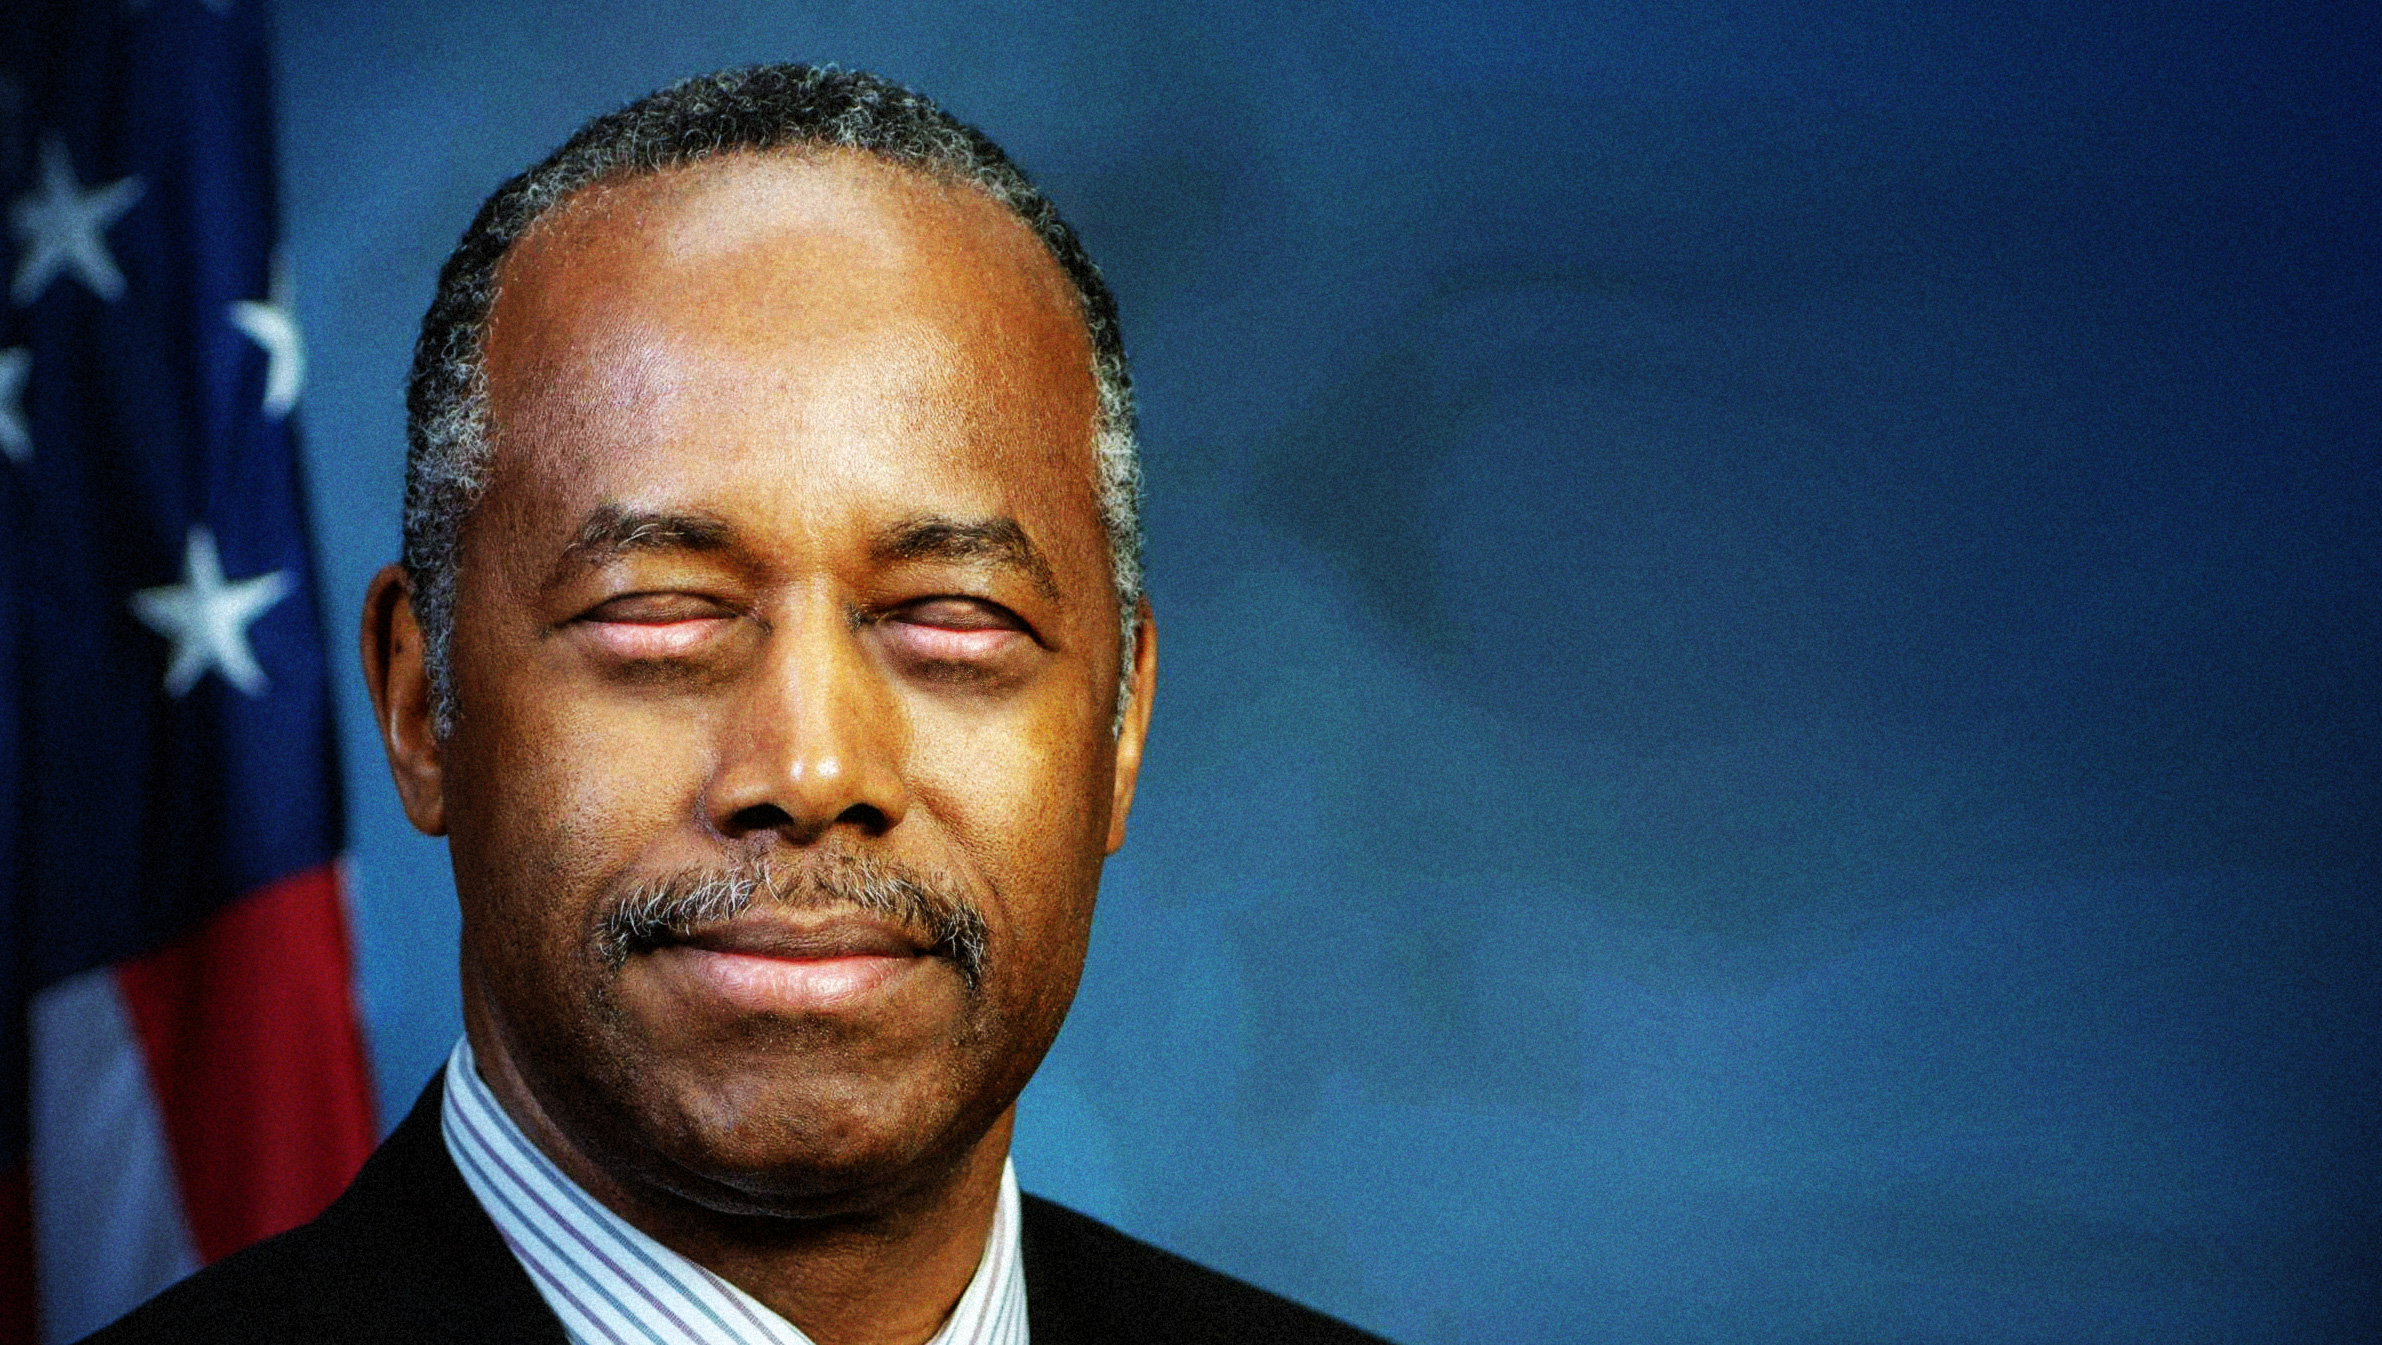 For Real? Ben Carson Says 'Poverty Is A State Mind'